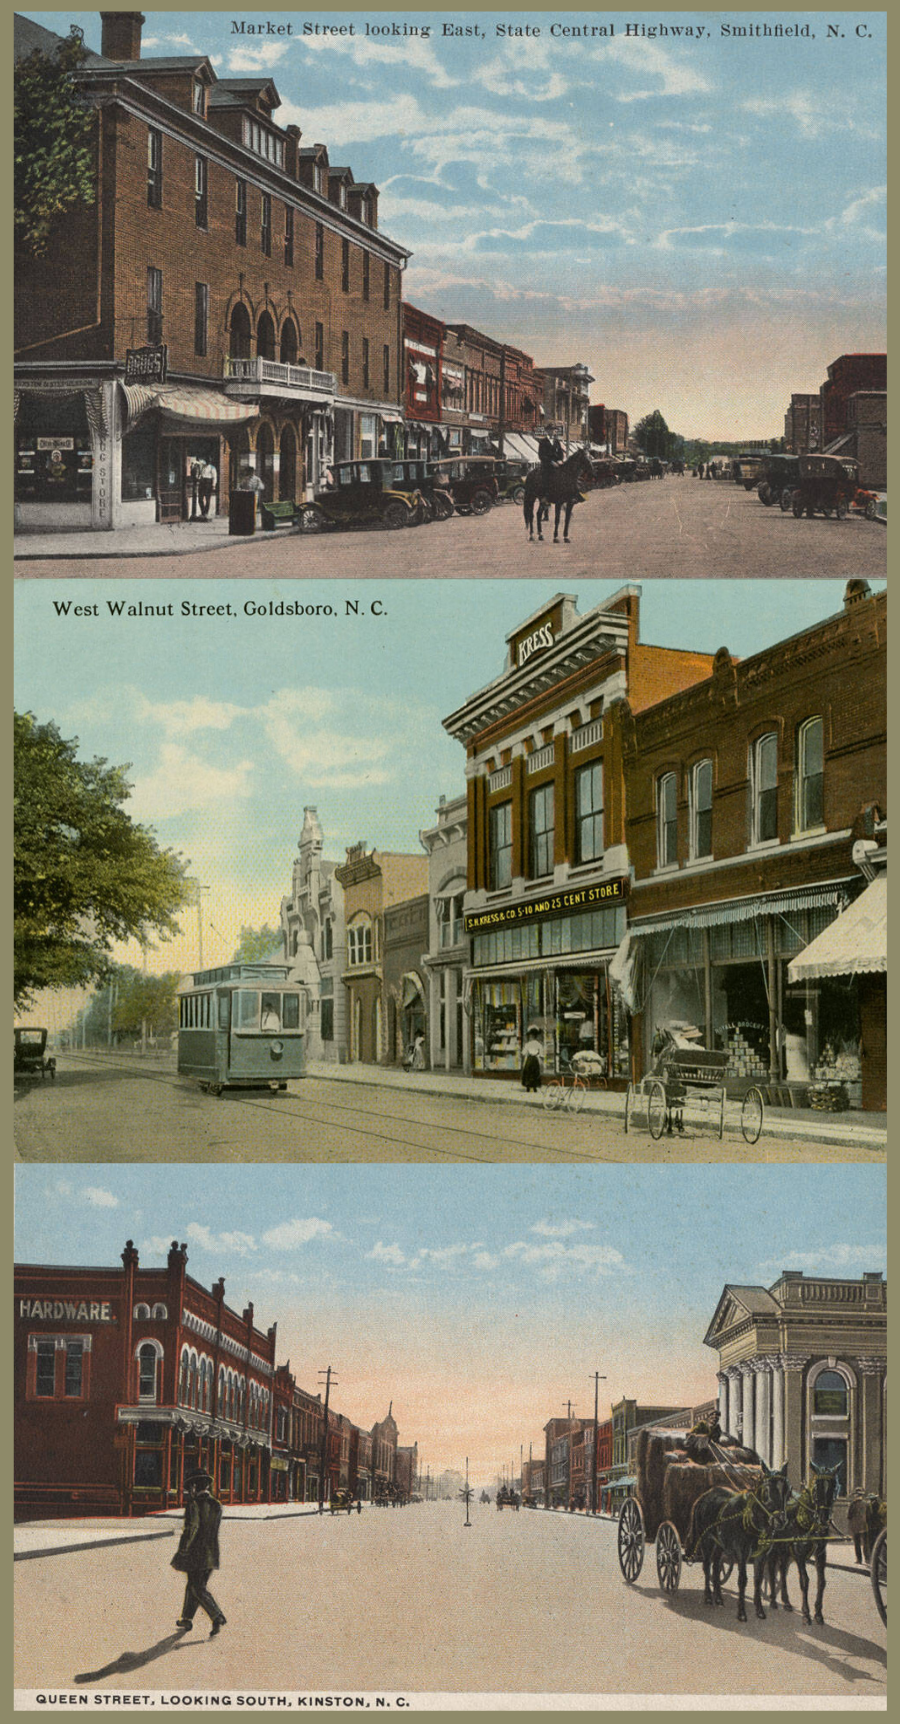 Images of historic postcards. Top: A postcard from 1925 features a view of downtown Smithfield. Middle: A postcard circa 1915-1930 depicts a downtown intersection in Kinston. Bottom: A postcard circa 1905-1915 shows a business district in Goldsboro.